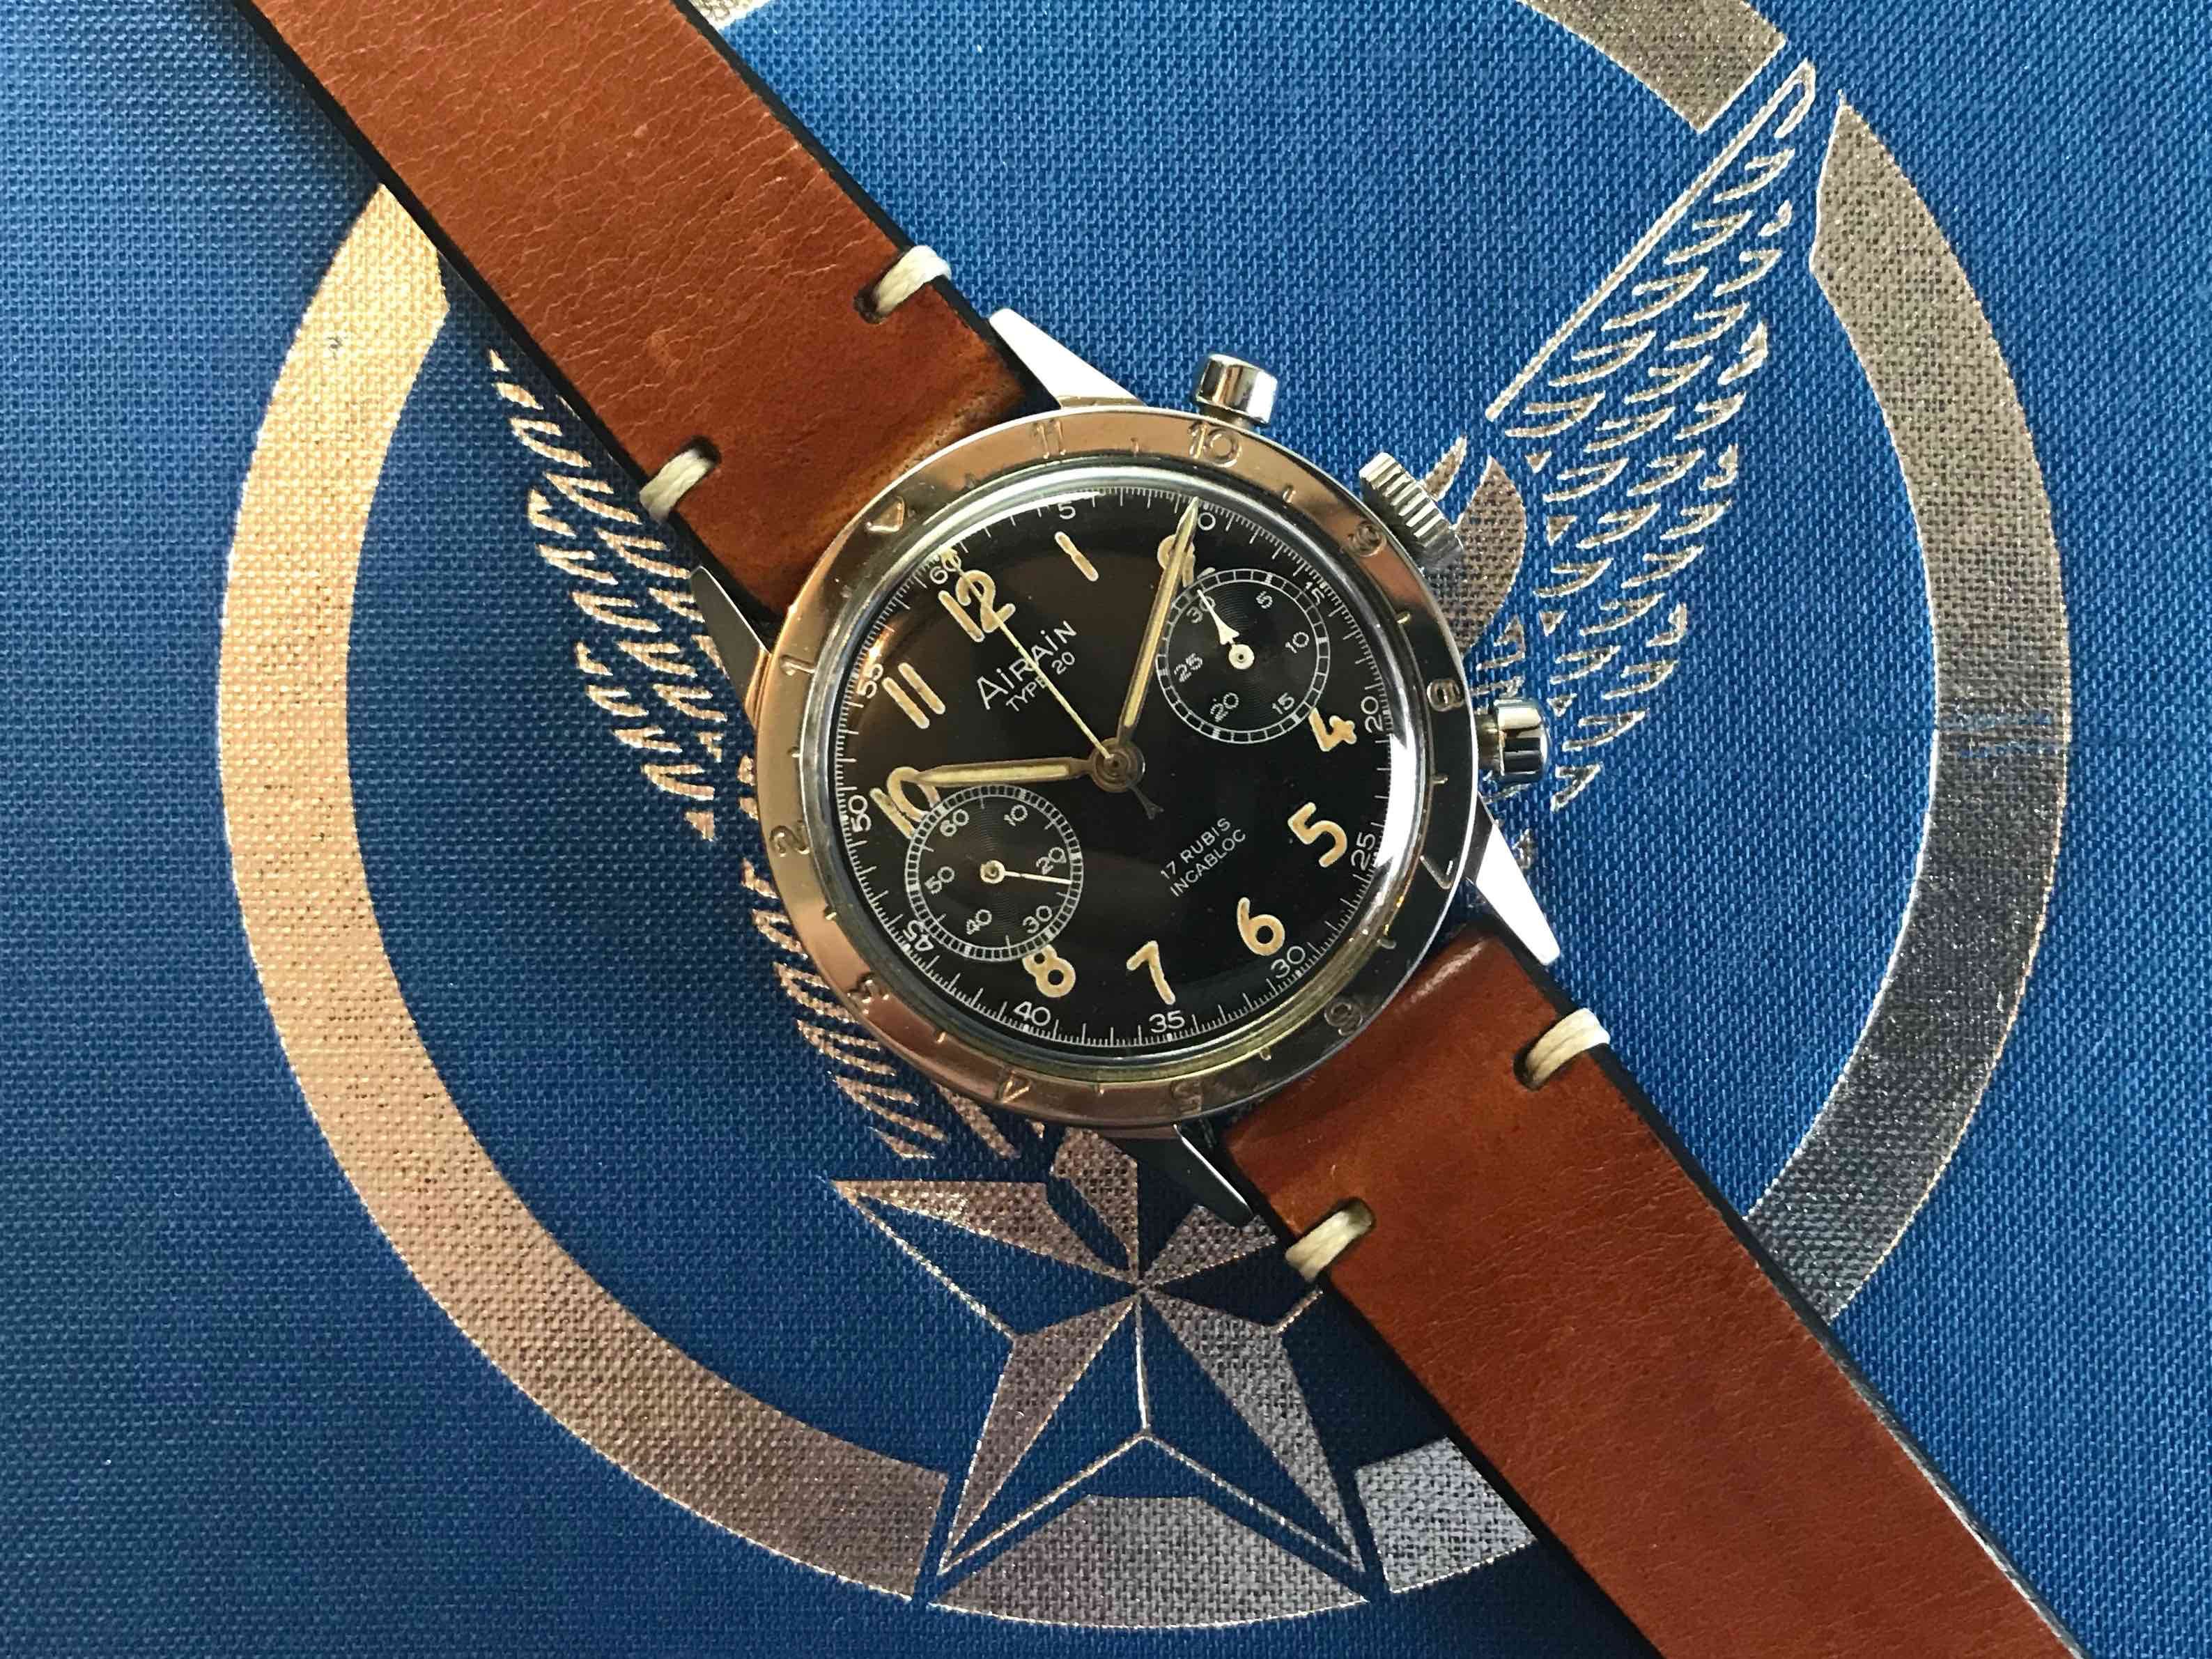 AIRAIN Type 20 | A very collectible military chronograph. ©Jerry